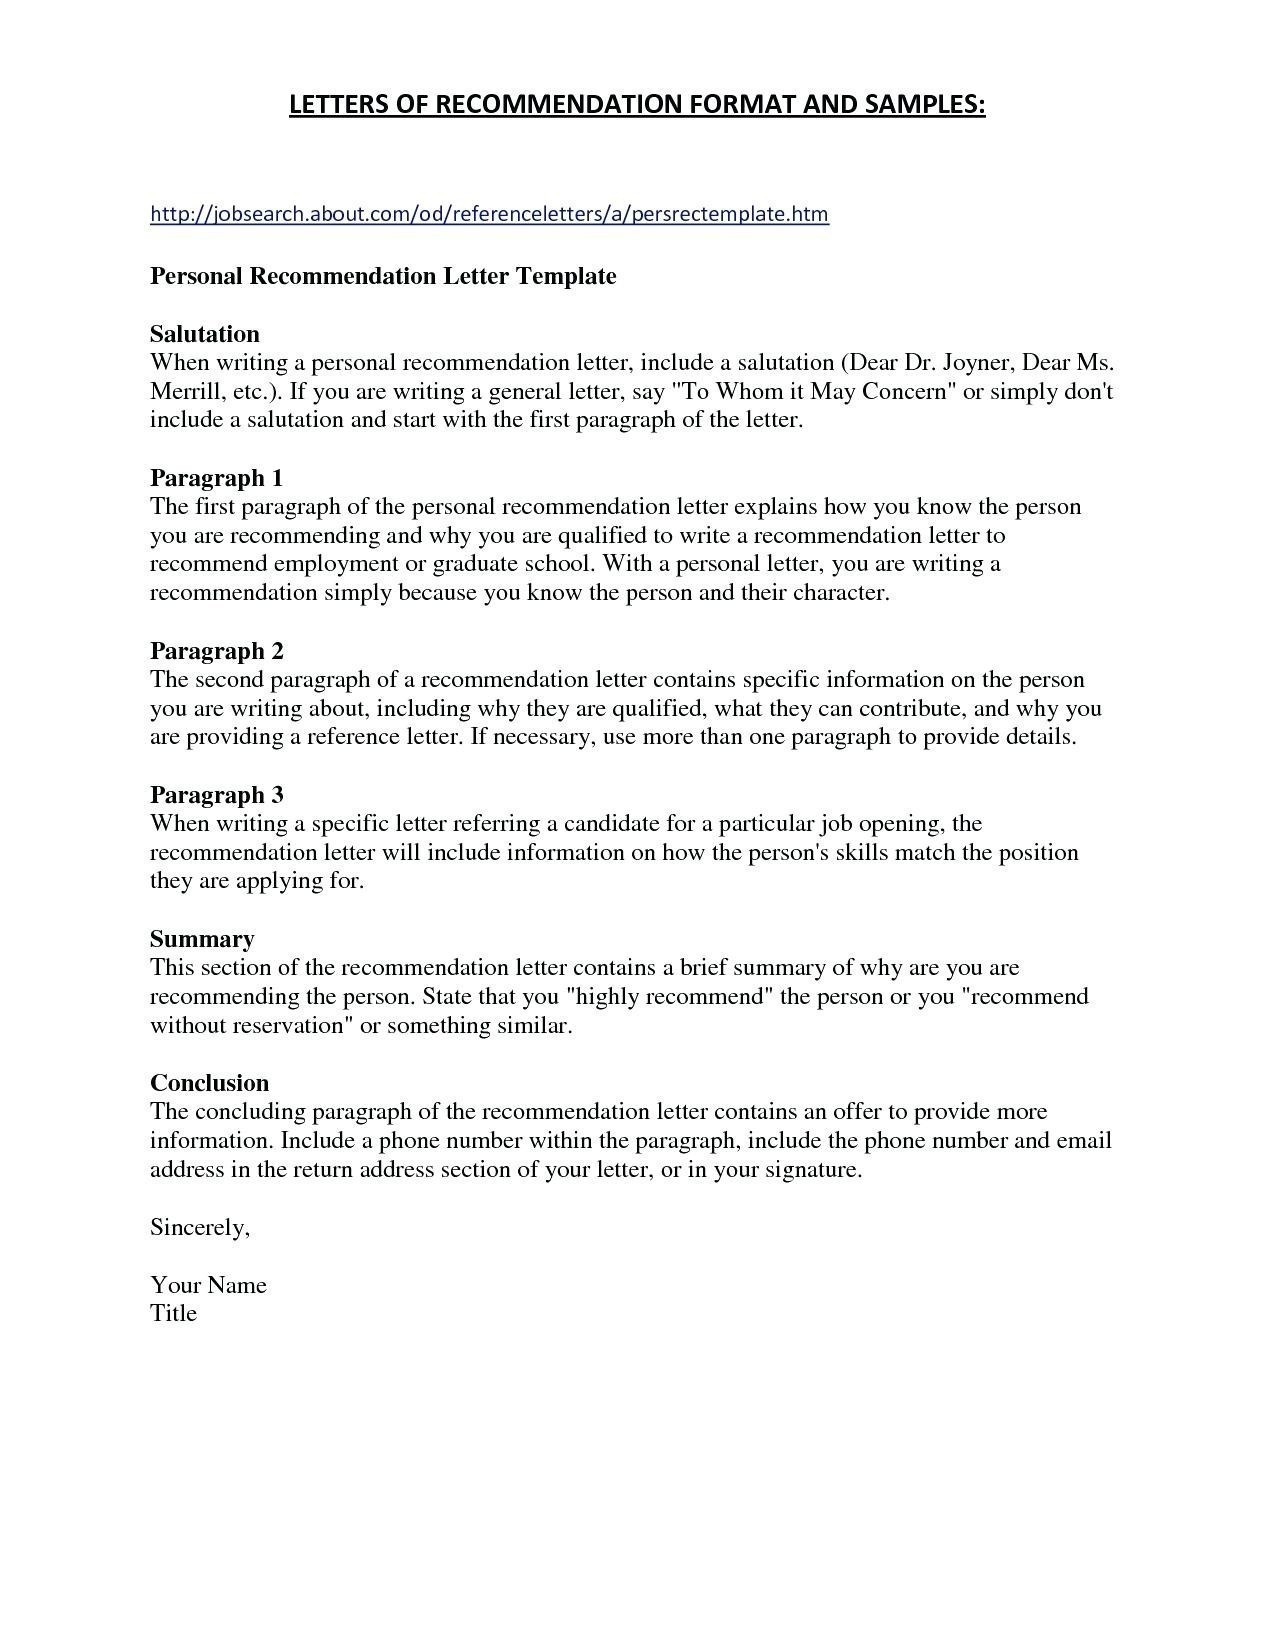 Contract Termination Letter Template - Letter Re Mendation for Employee Termination Template Best